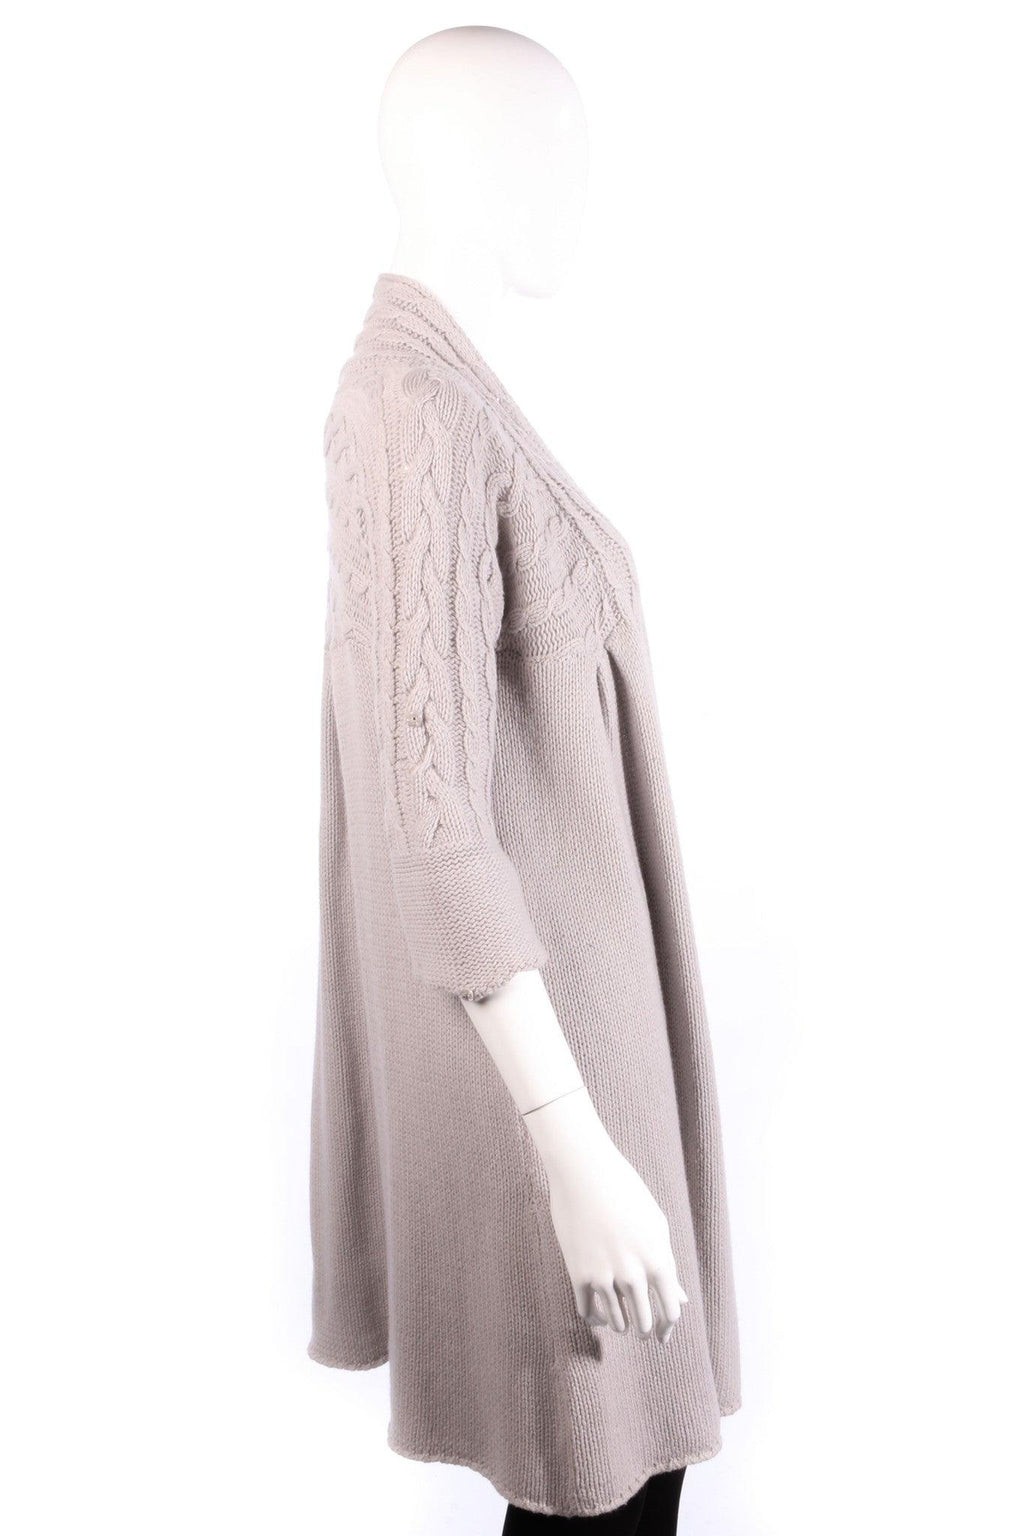 Day Birger Long Cardigan Wool Mix Grey Size S